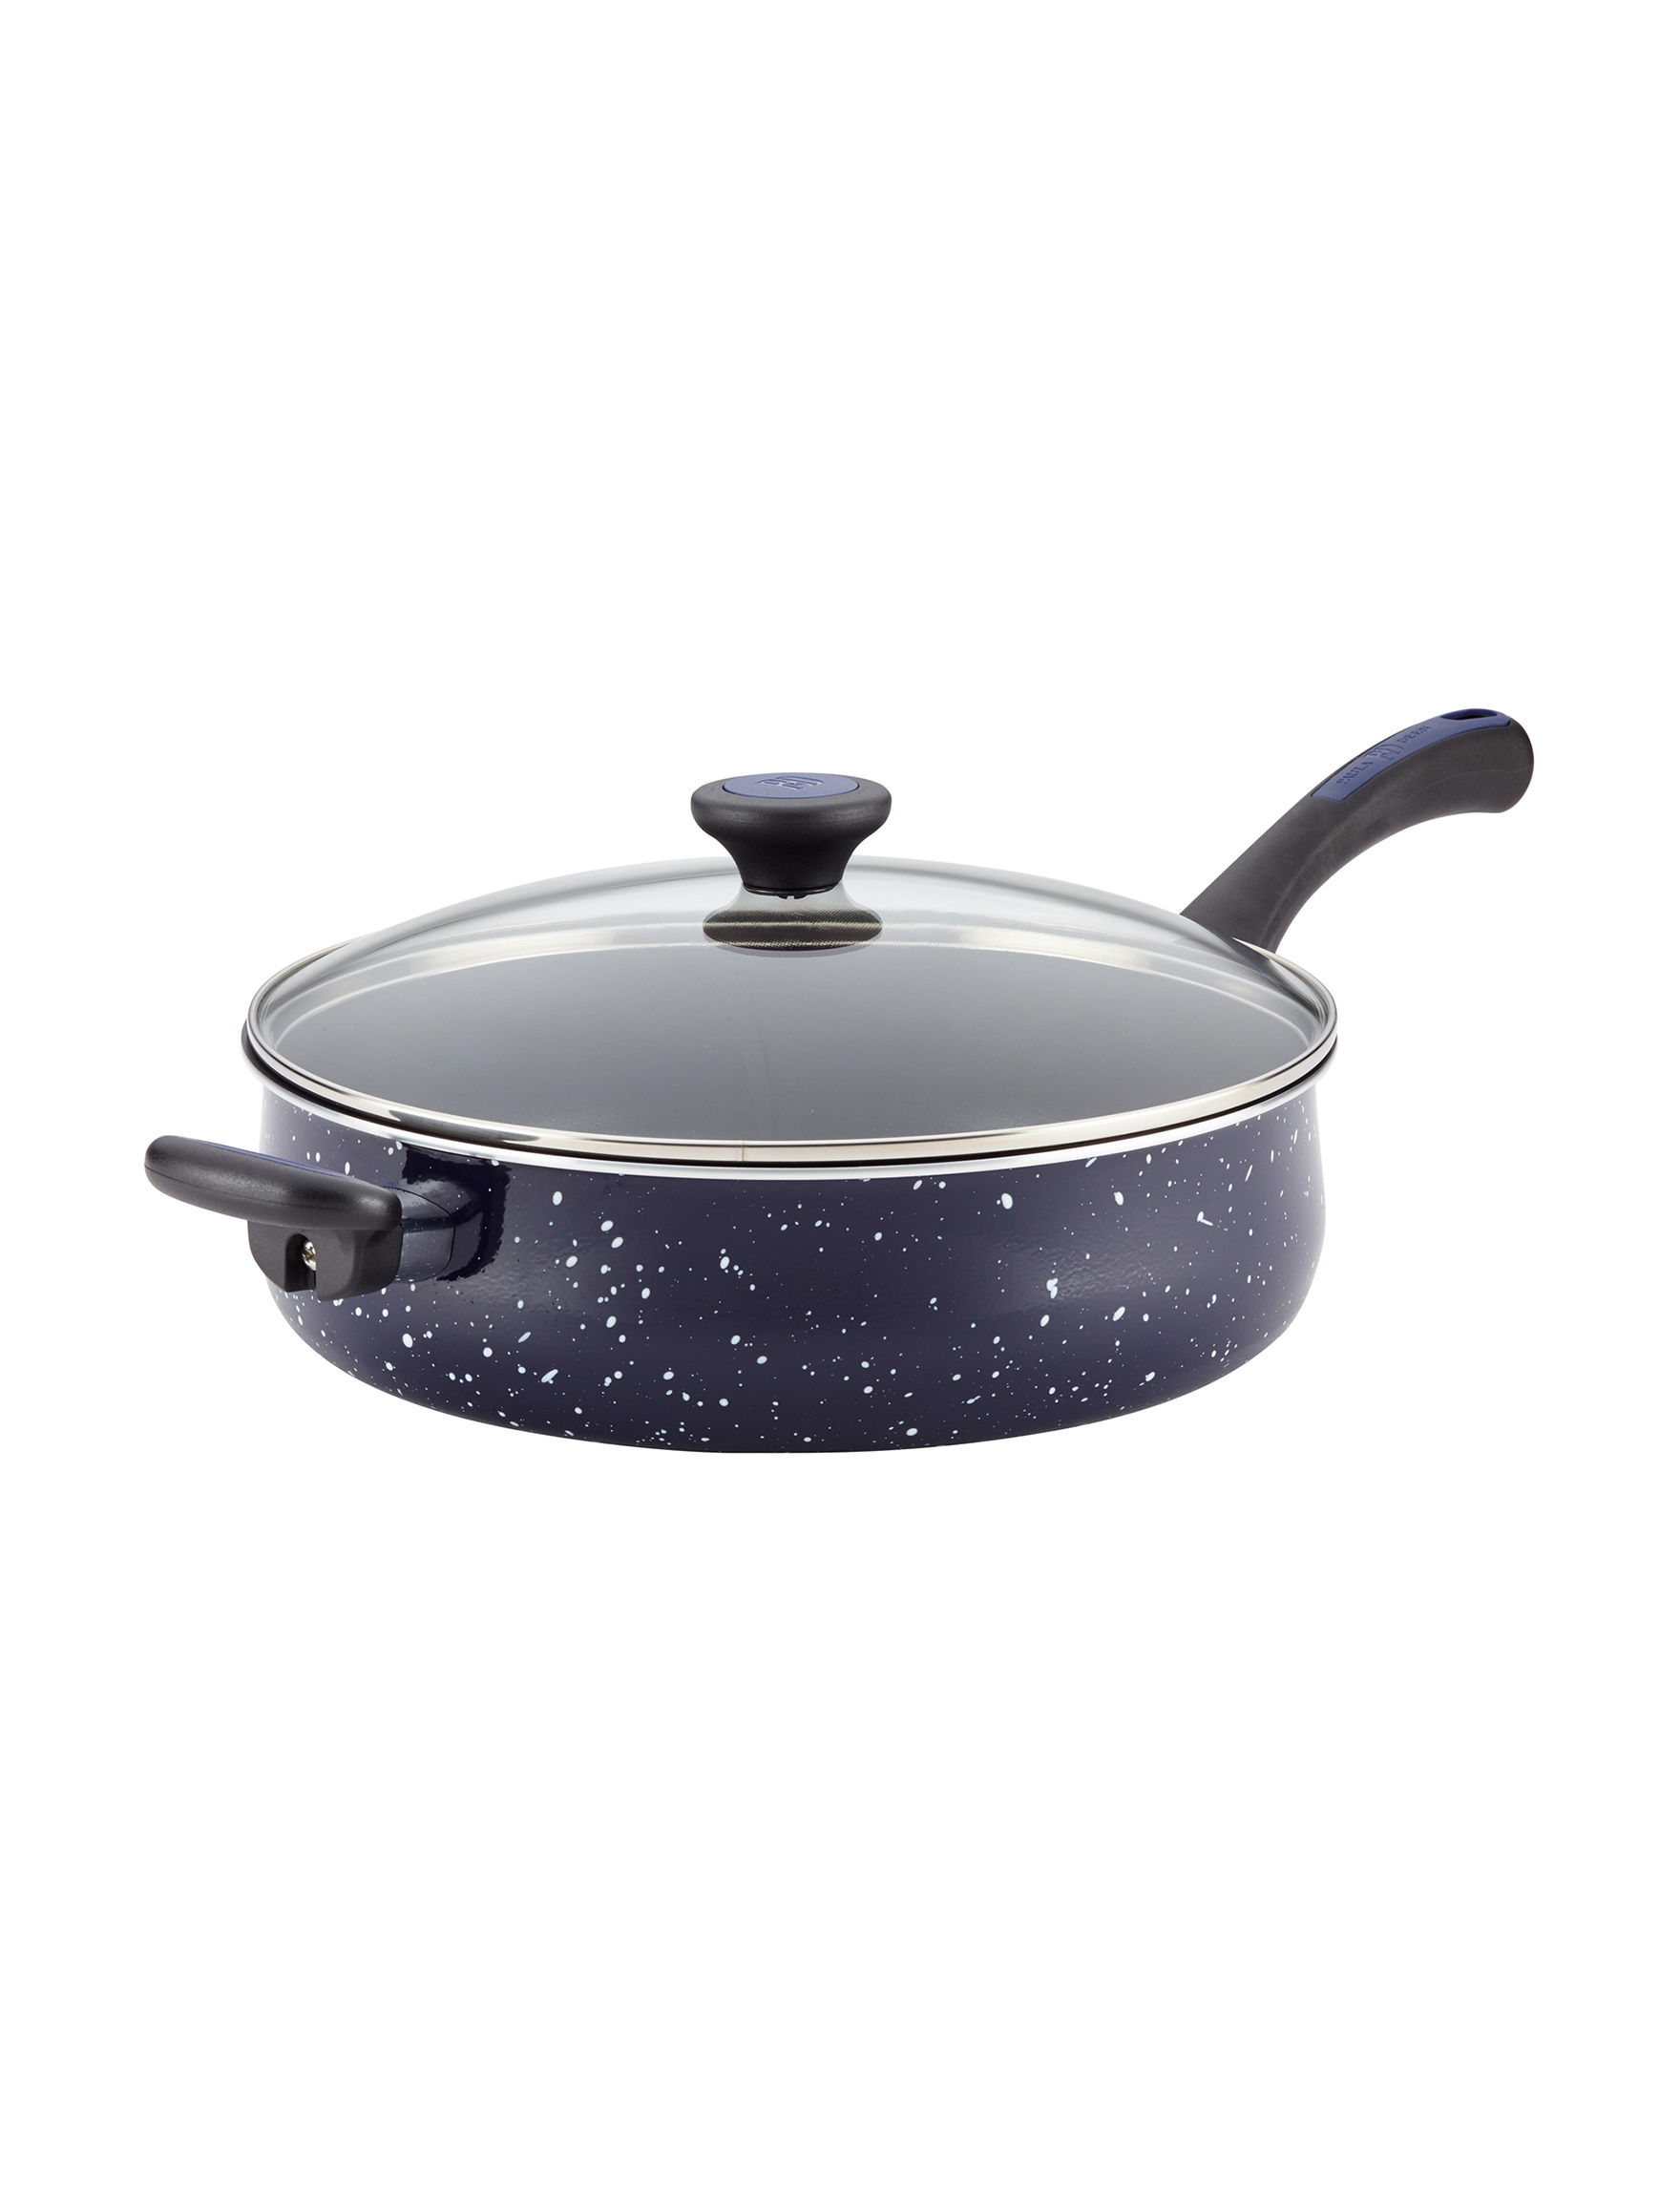 Paula Deen Dark Blue Pots & Dutch Ovens Cookware